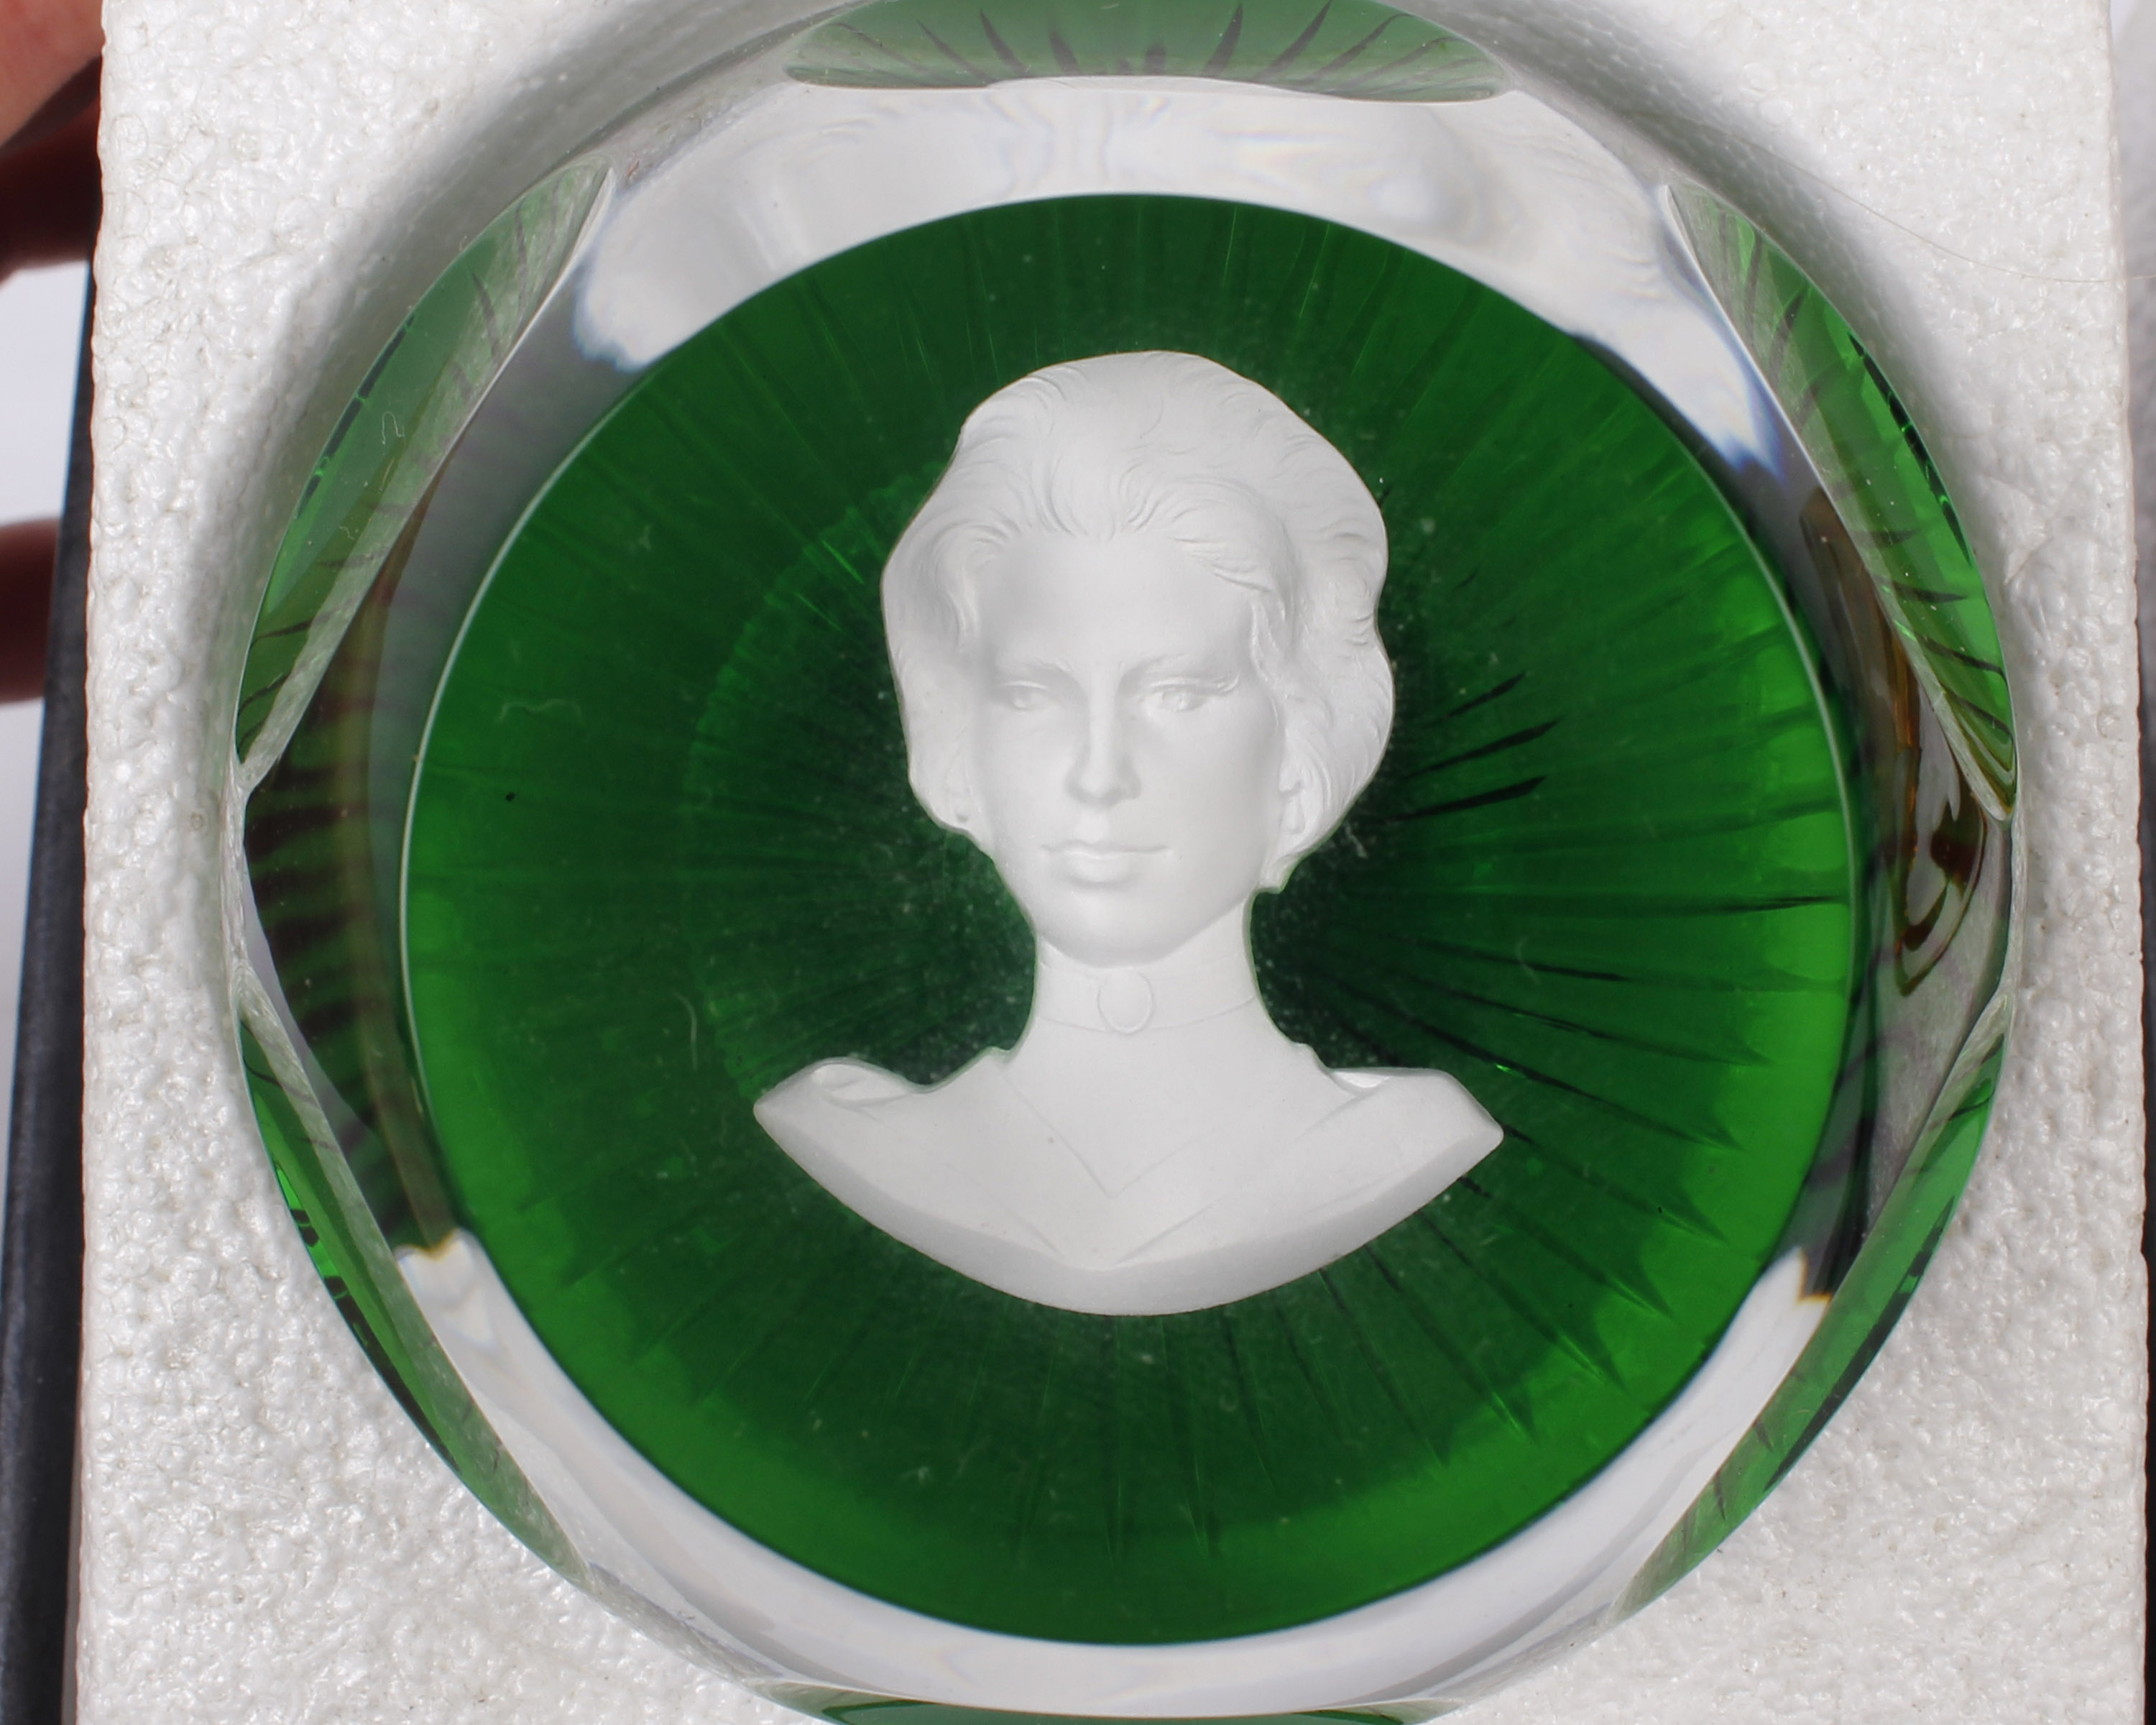 A Set of Four Royal Cameos in Crystal By Baccarat Crystal, France Four royal portrait paperweights - Image 3 of 3